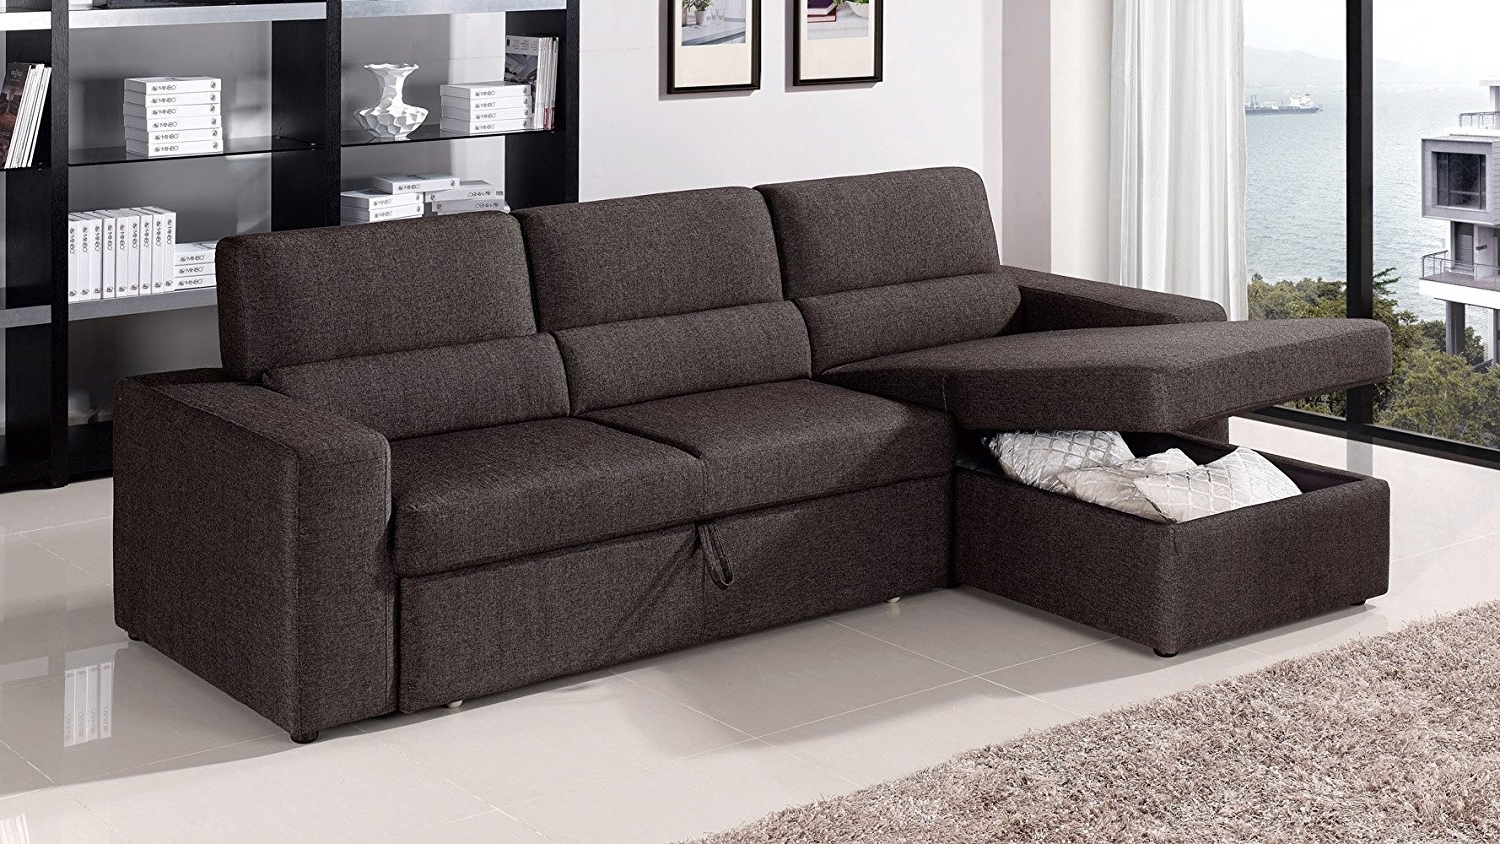 Favorite Chaise Sofa Beds With Storage Inside Amazon: Black/brown Clubber Sleeper Sectional Sofa – Left (View 12 of 15)